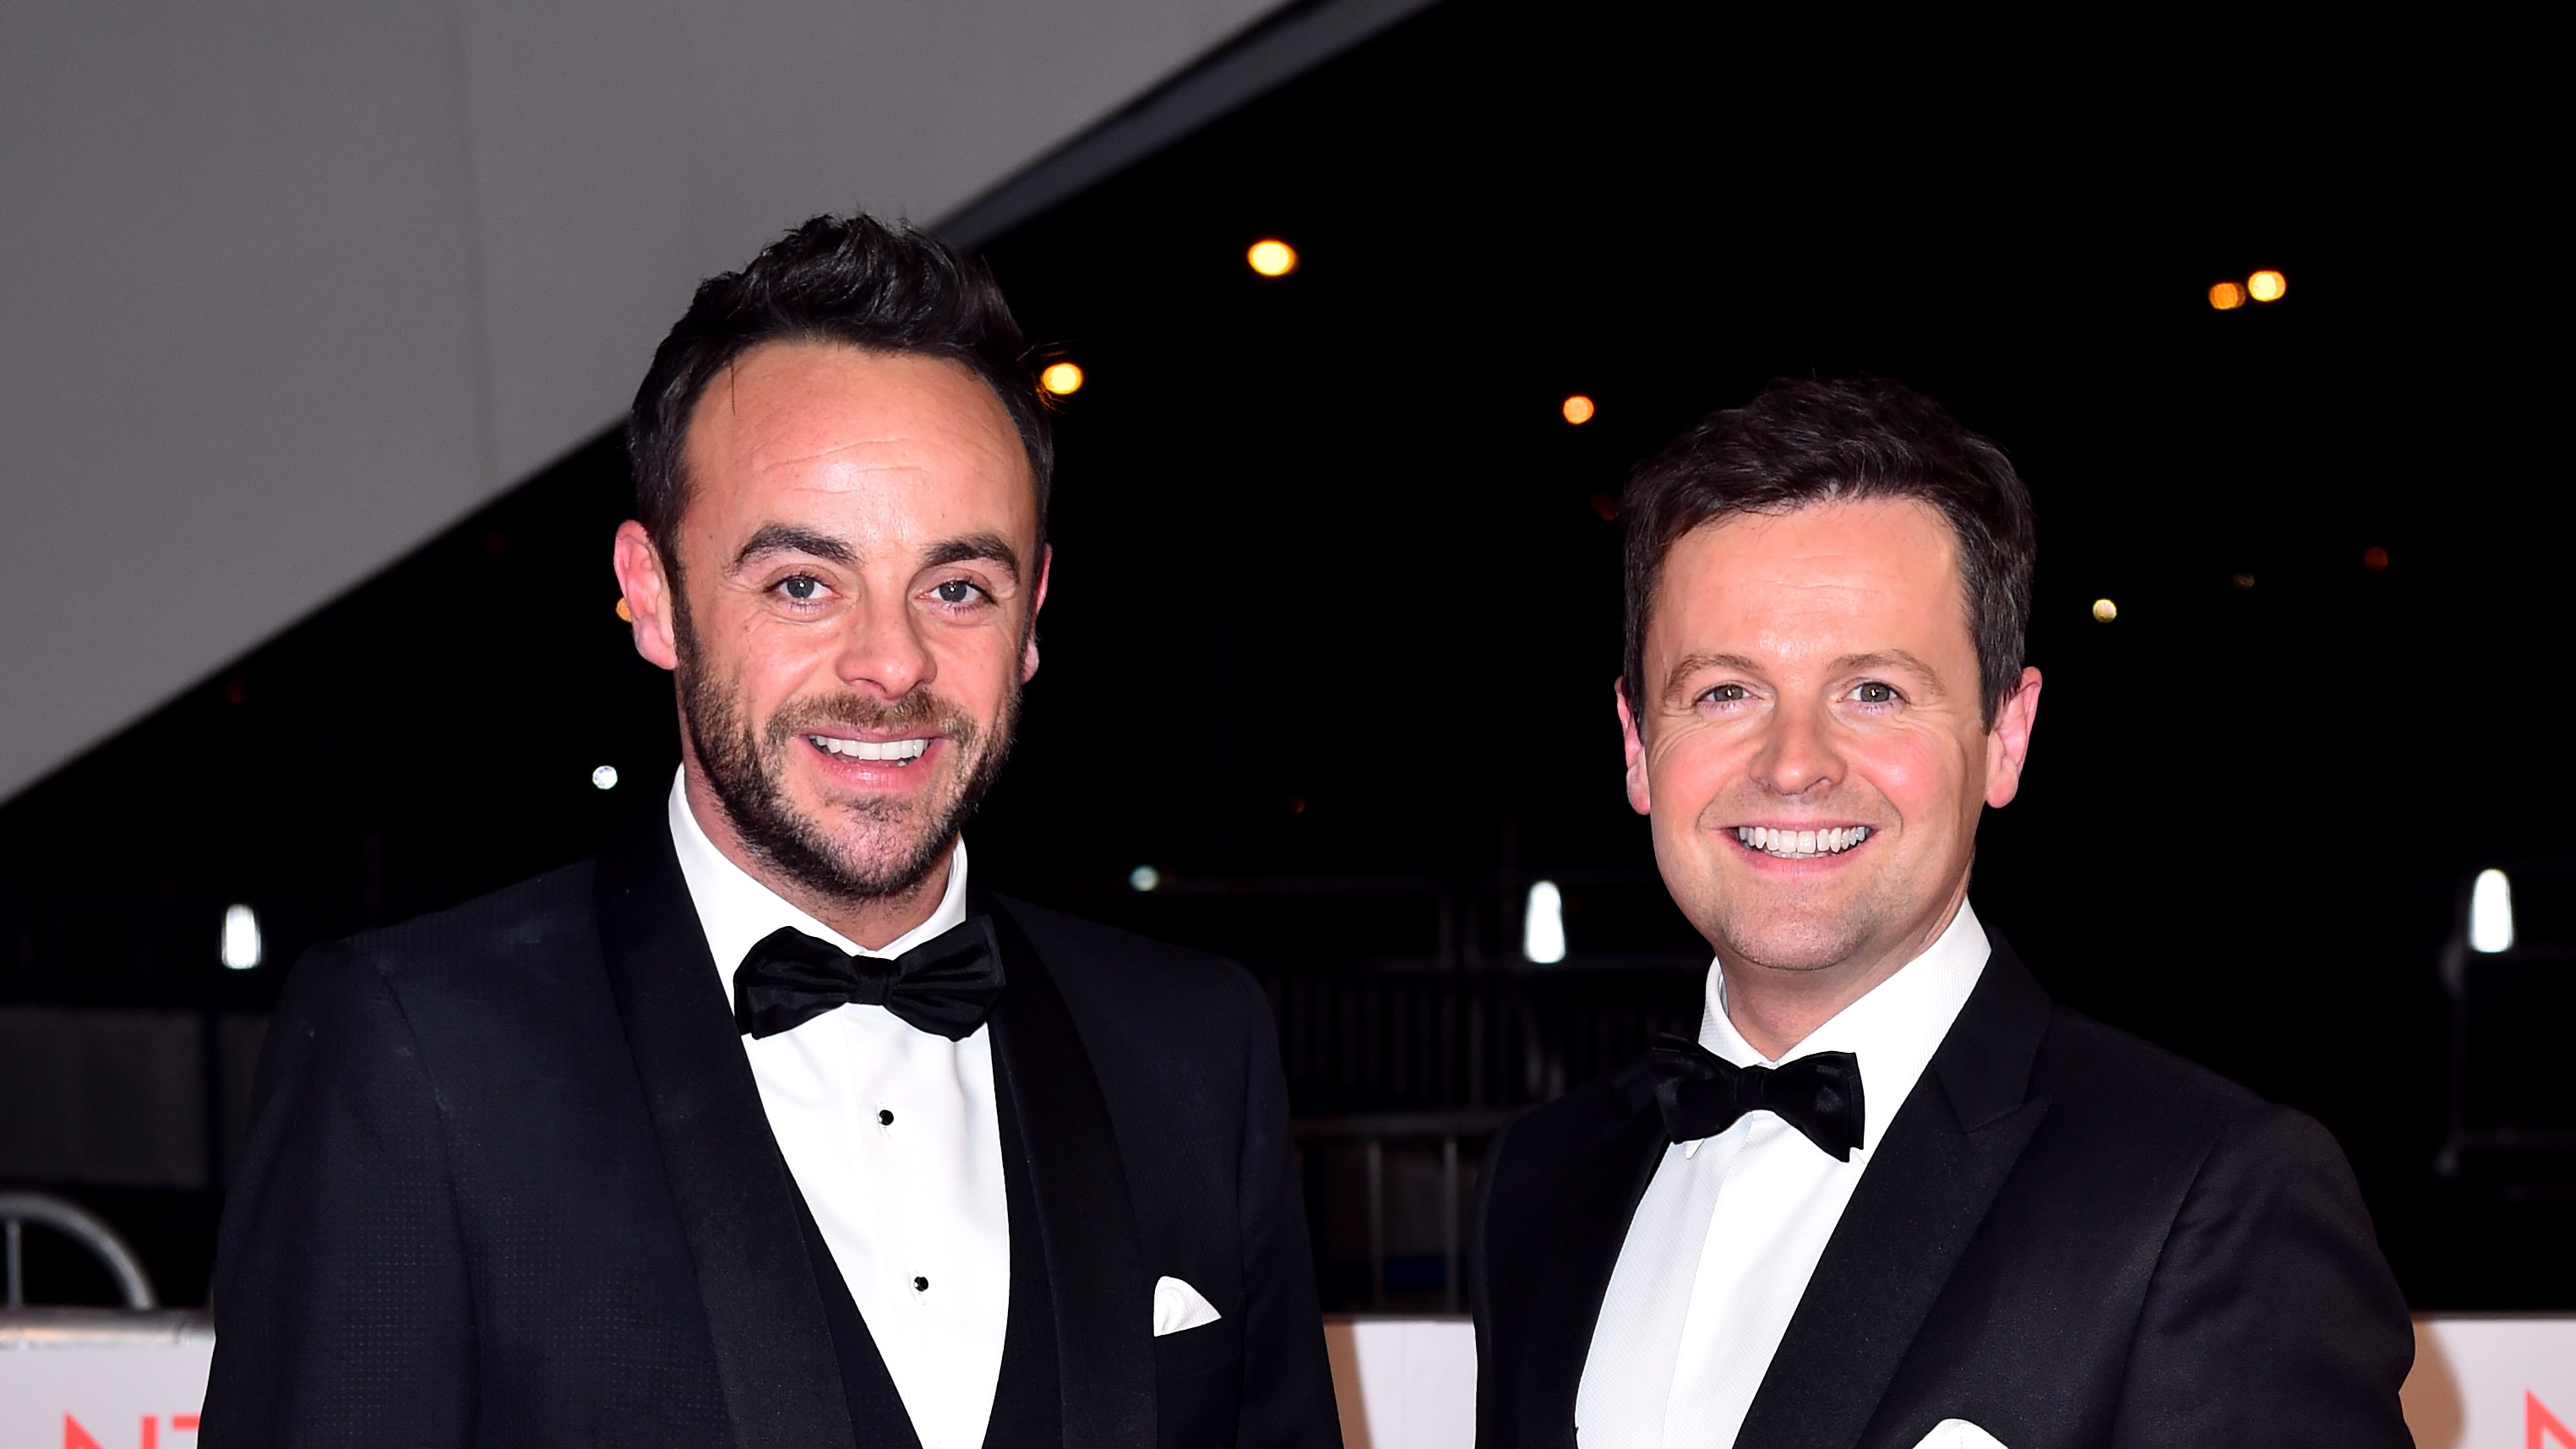 Ant and Dec reveal how they nearly split over drink-driving conviction